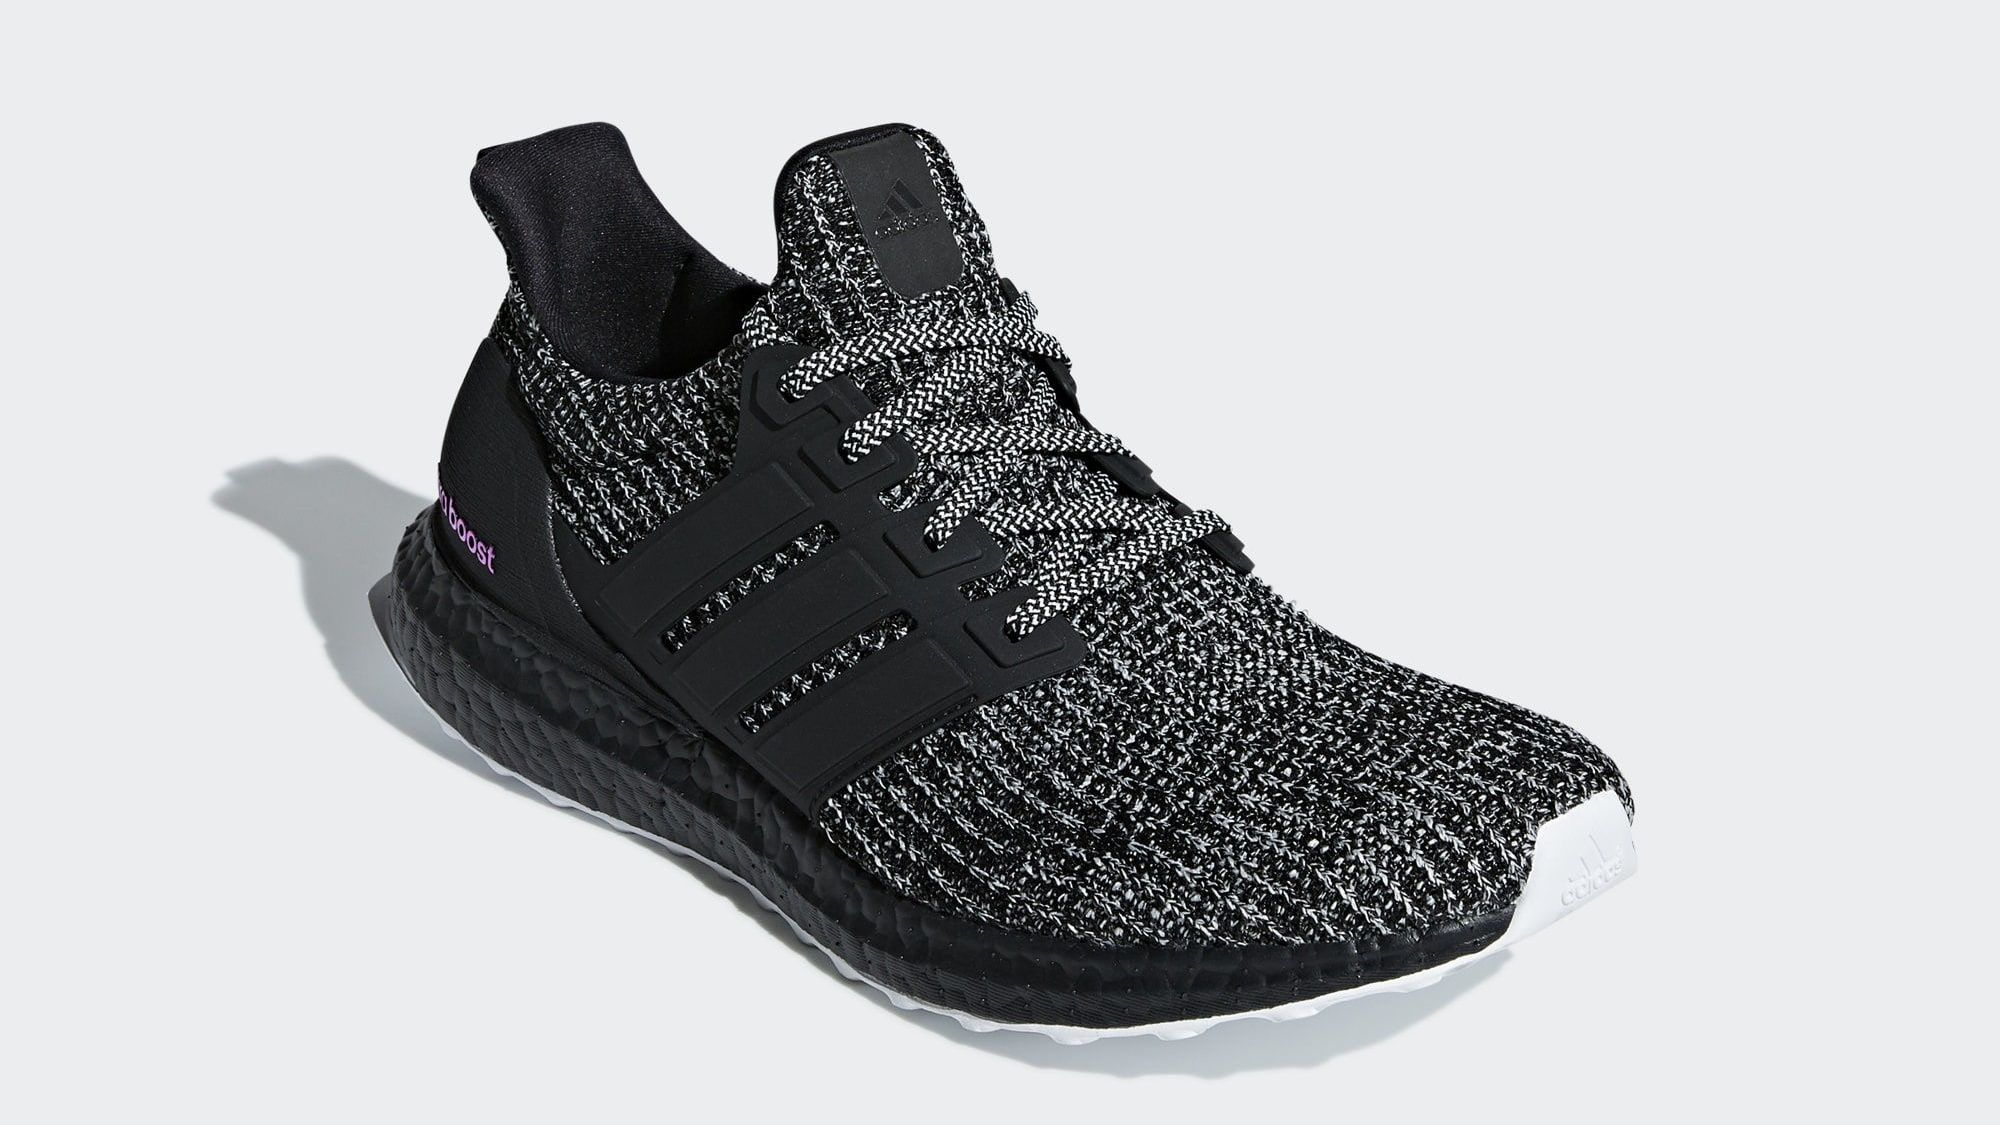 0f076f260 adidas-ultra-boost-breast-cancer-awareness-release-date-profile-bc0247-front